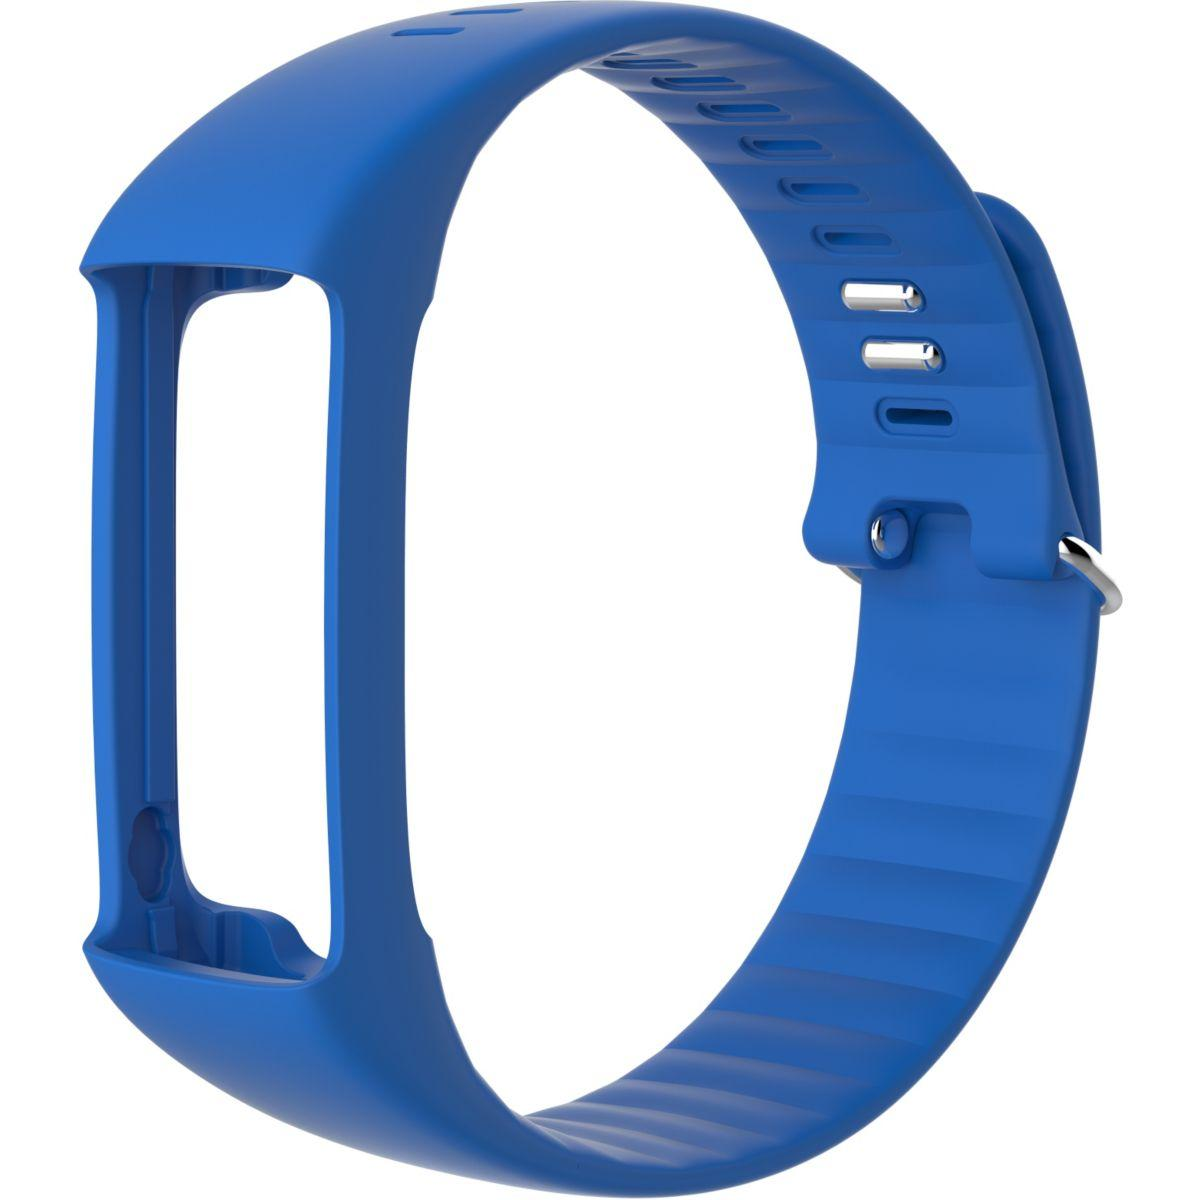 Bracelet montre polar a360 bleu m - 3% de remise : code pam3 (photo)